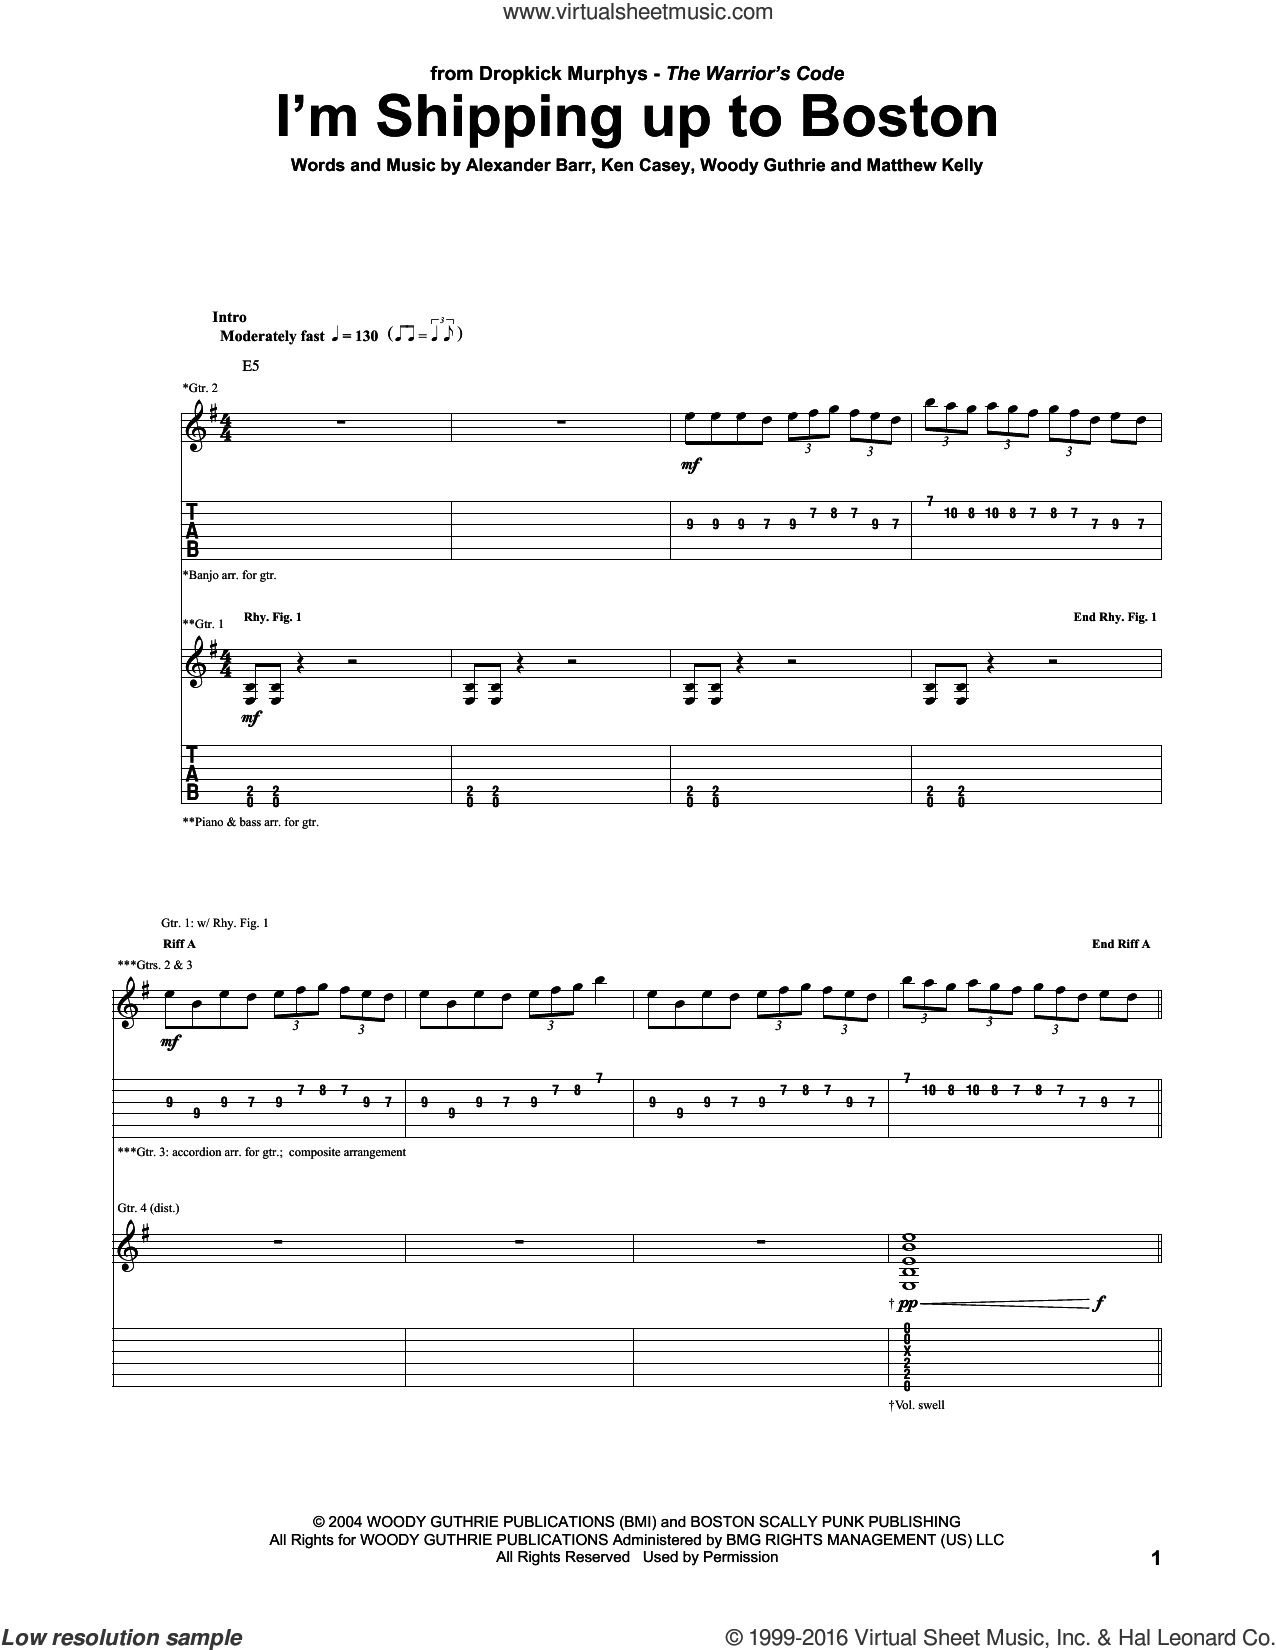 I'm Shipping Up To Boston sheet music for guitar (tablature) by Dropkick Murphys, Alexander Barr, Ken Casey, Matthew Kelly and Woody Guthrie, intermediate skill level